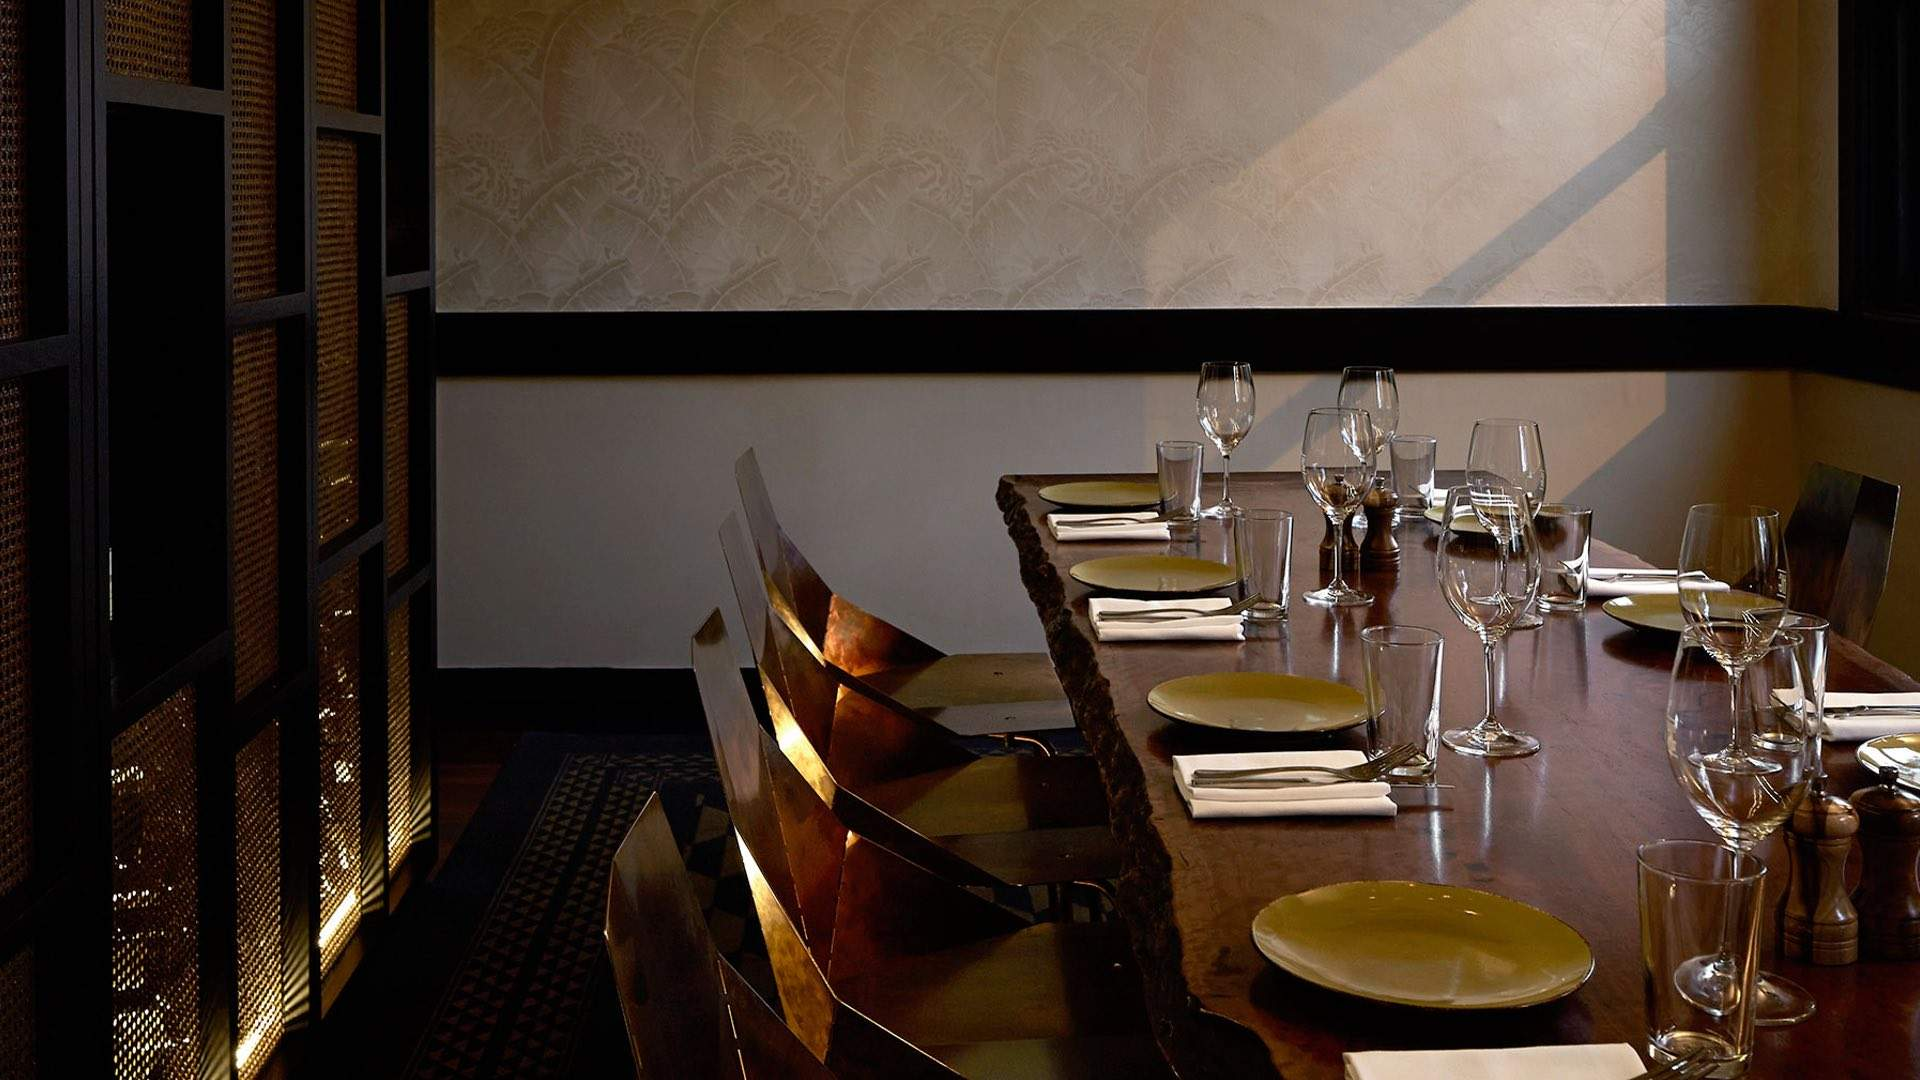 melbourne private dining rooms | Melbourne Restaurants and Bars with Private Dining Rooms ...